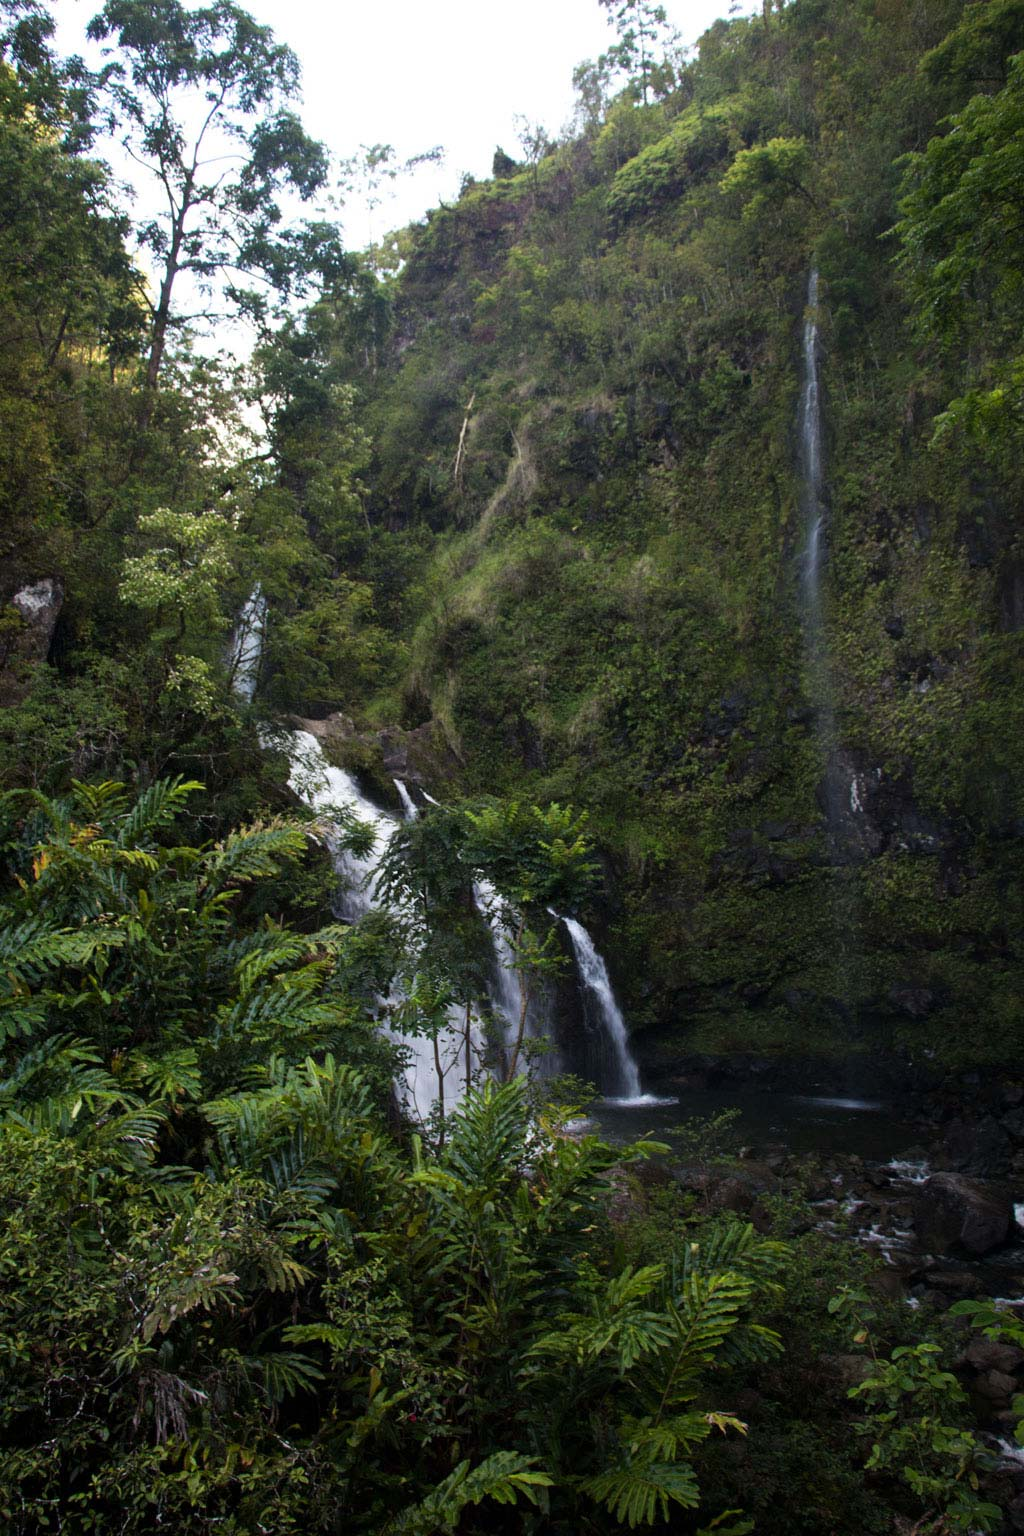 Maui Hawaii – Road to Hana Wasserfall | SOMEWHERE ELSE